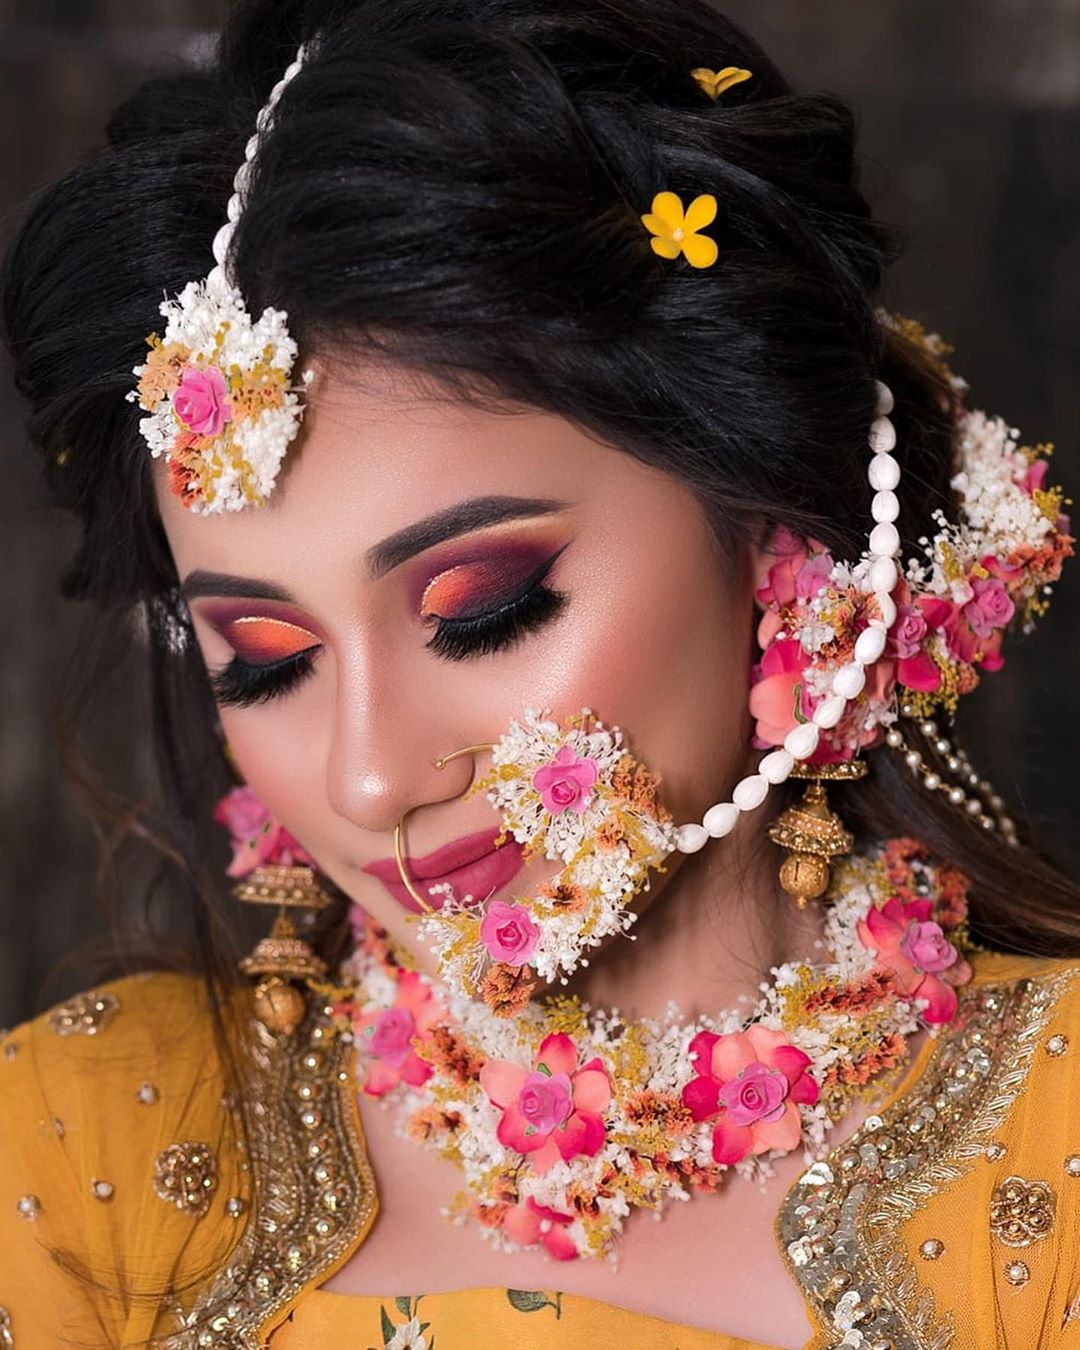 20 Unique & Stunning Floral Nath Designs To Wear For Your Wedding! - Wedbook